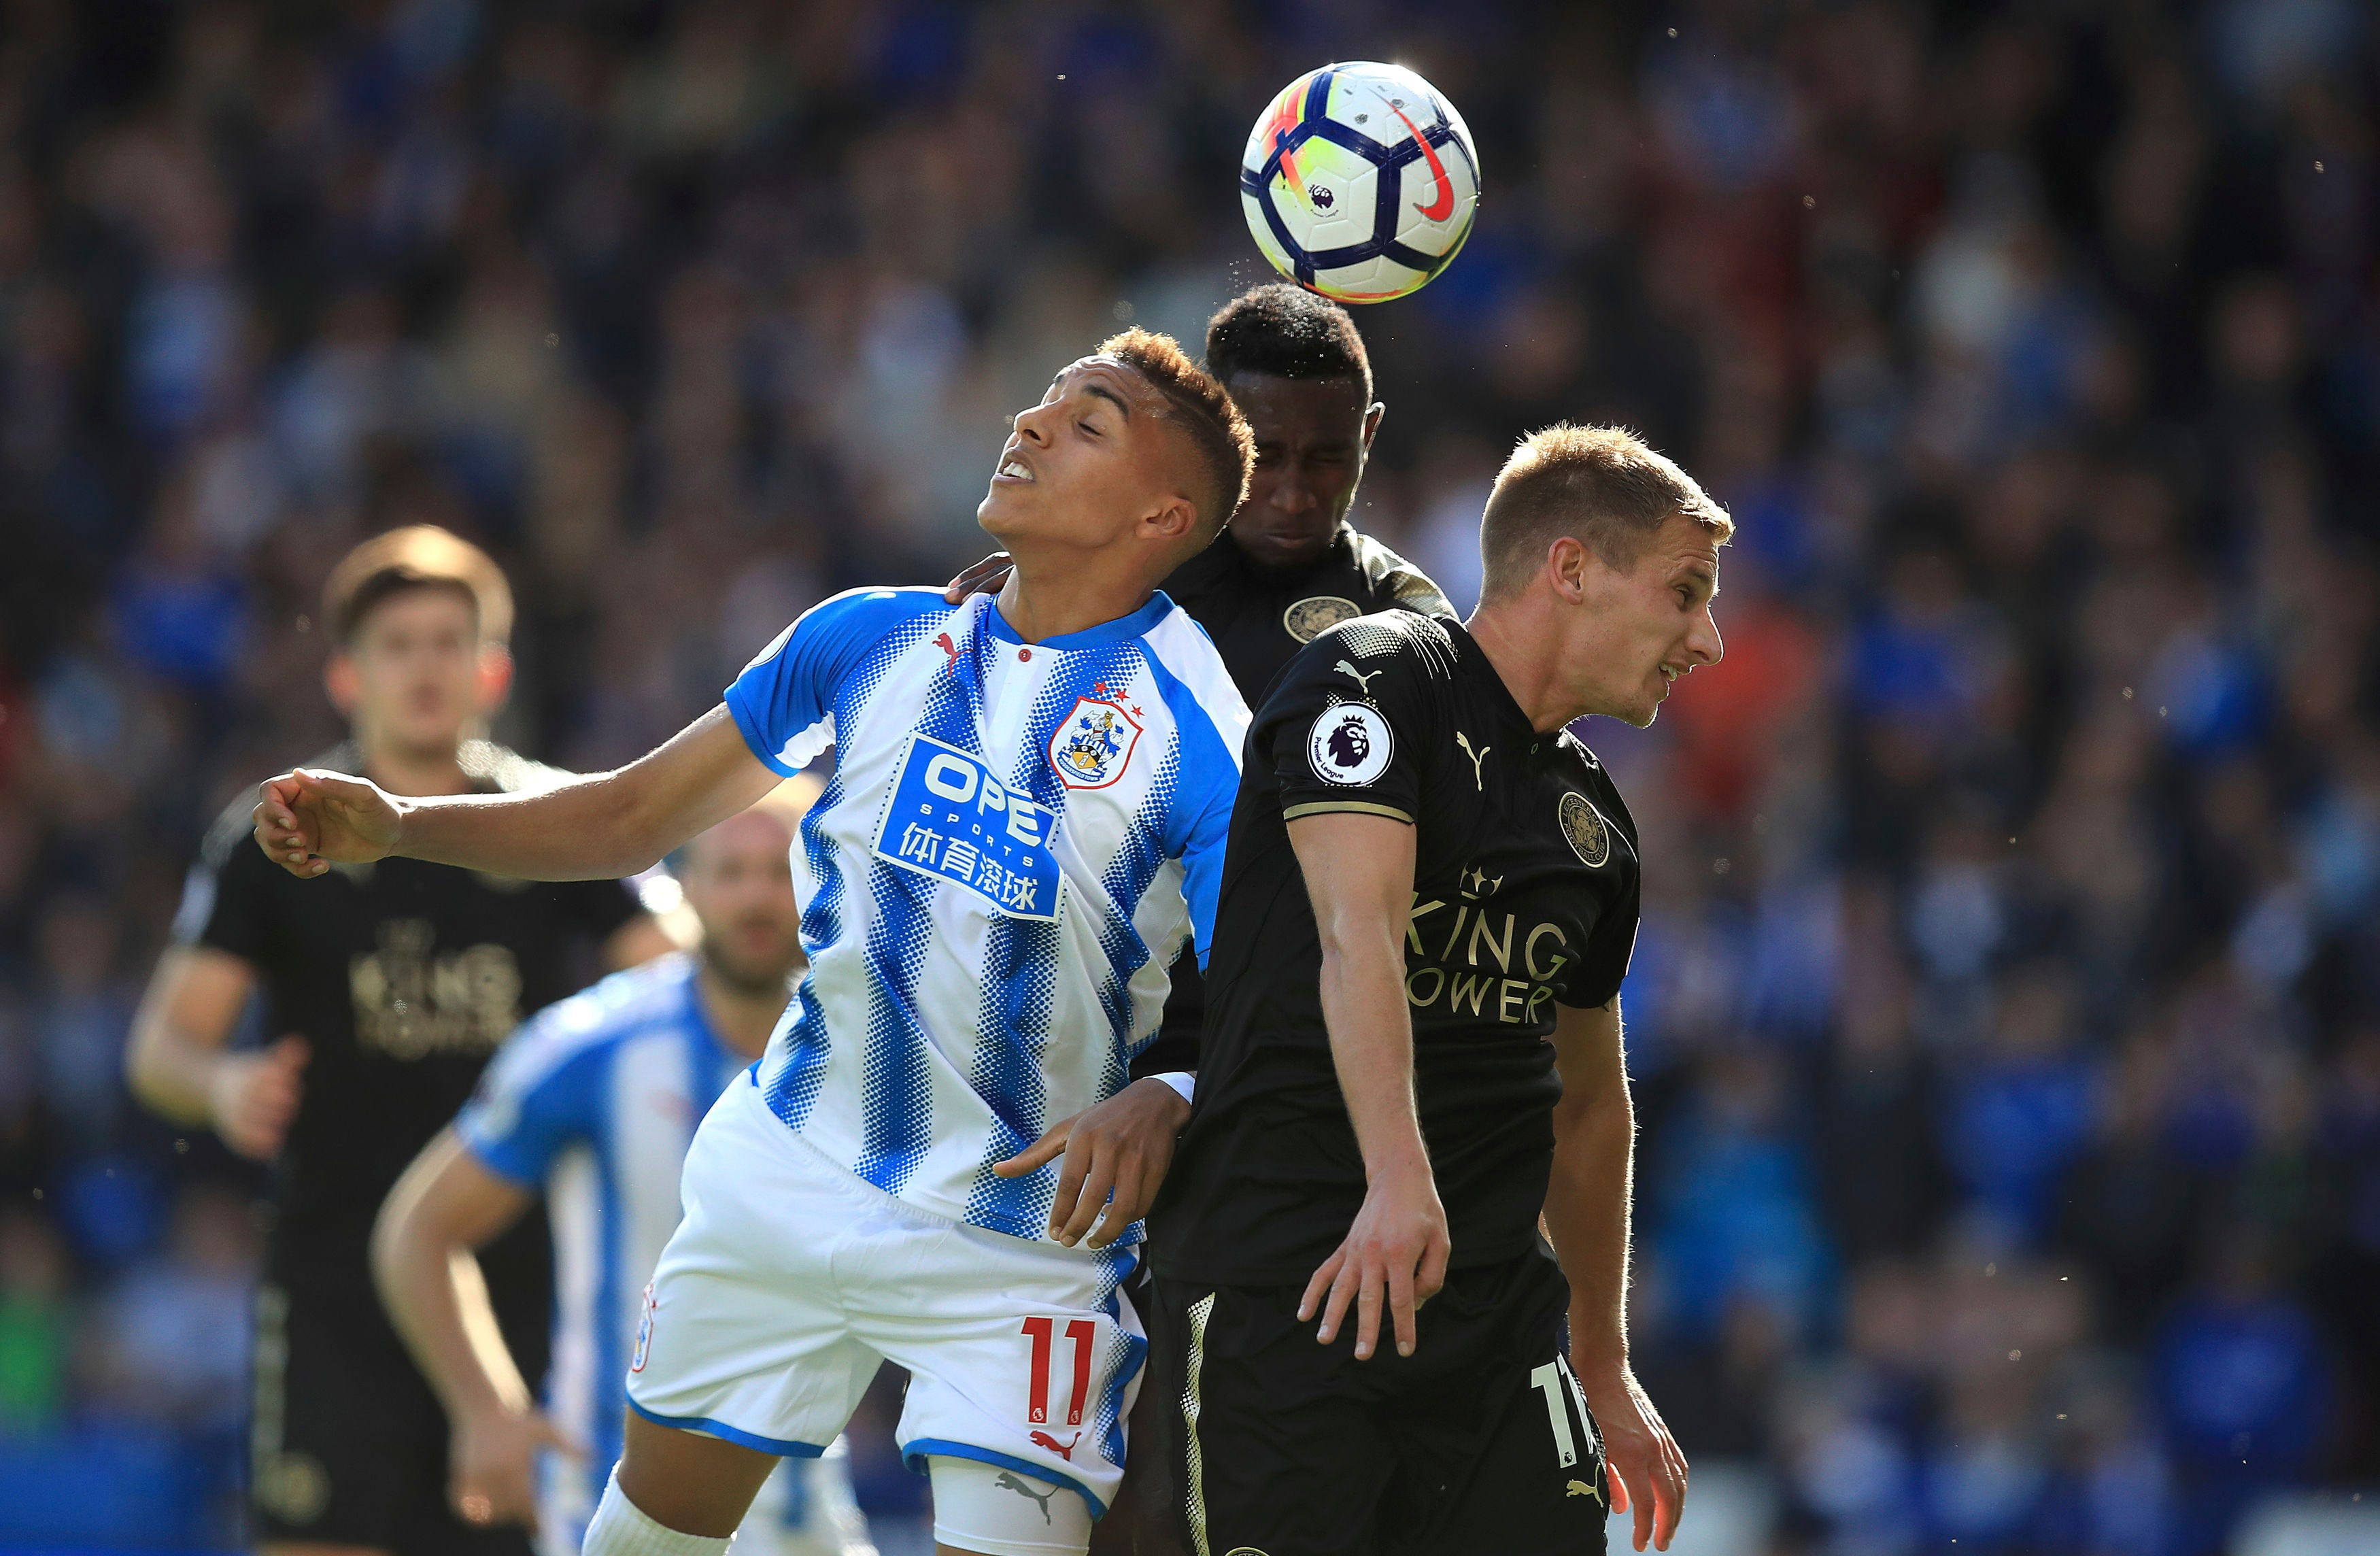 Huddersfield draws with Leicester 1-1 in EPL